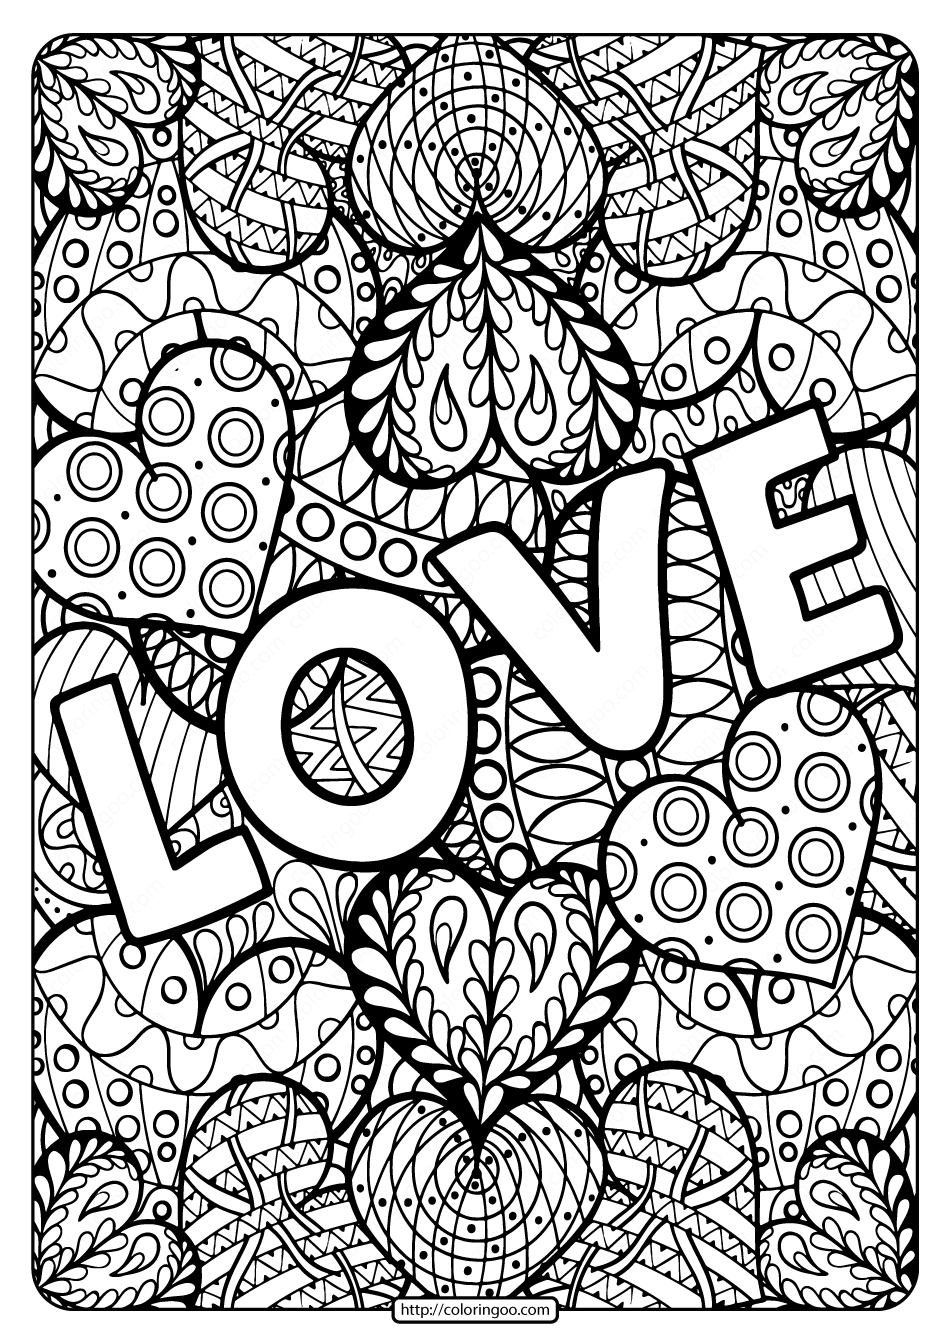 wwwfree coloring pagescom printable toad coloring pages for kids cool2bkids coloring pagescom wwwfree